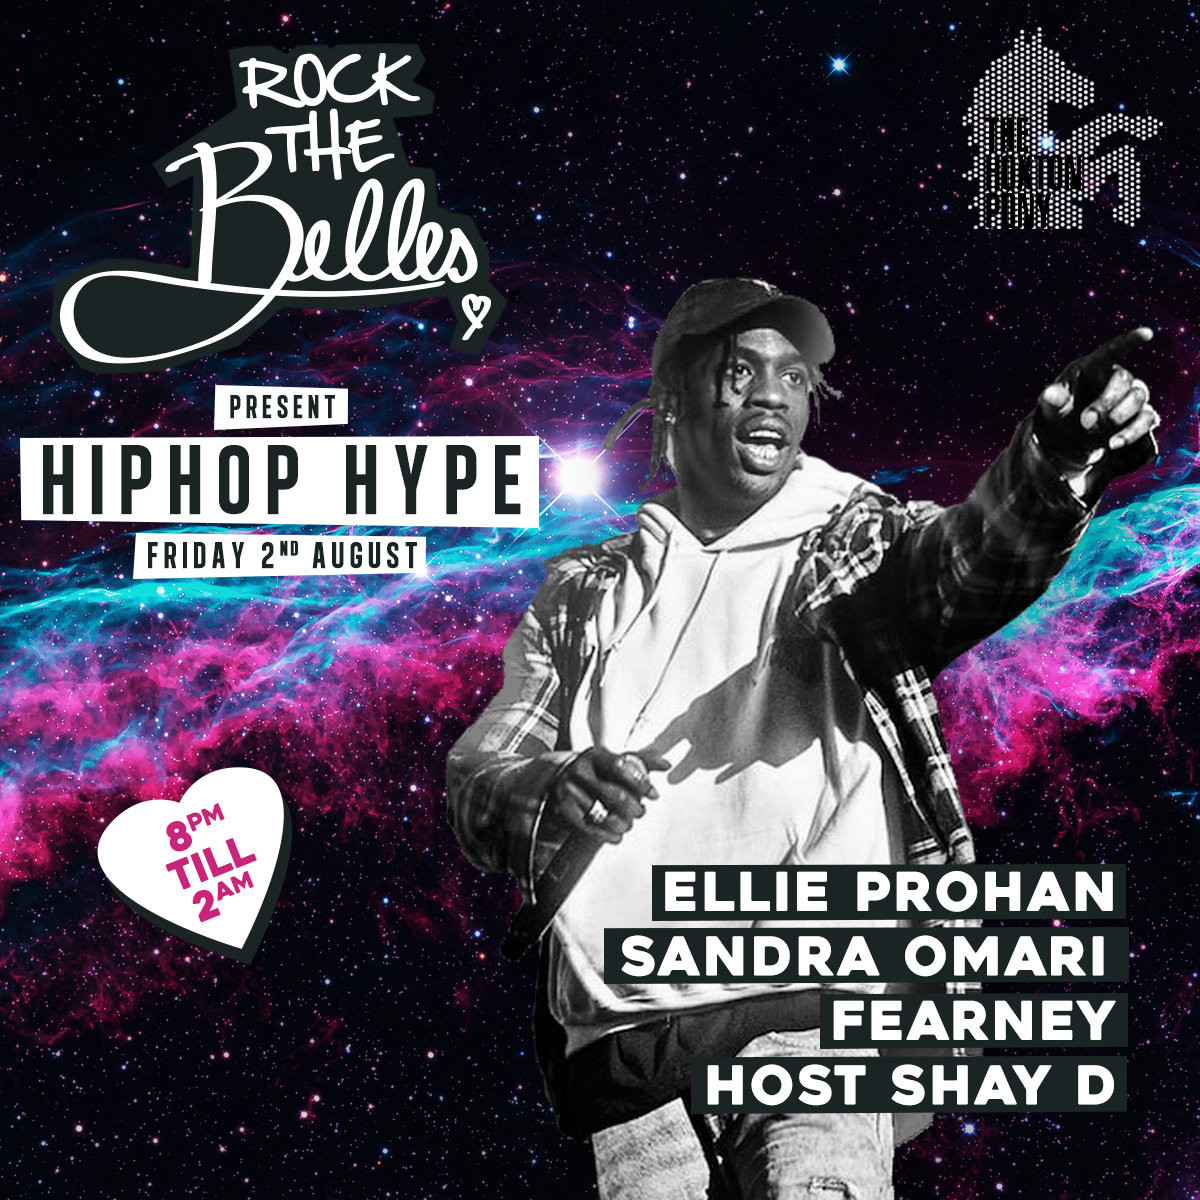 Rock The Belles x HipHop Hype x 1st Fri's